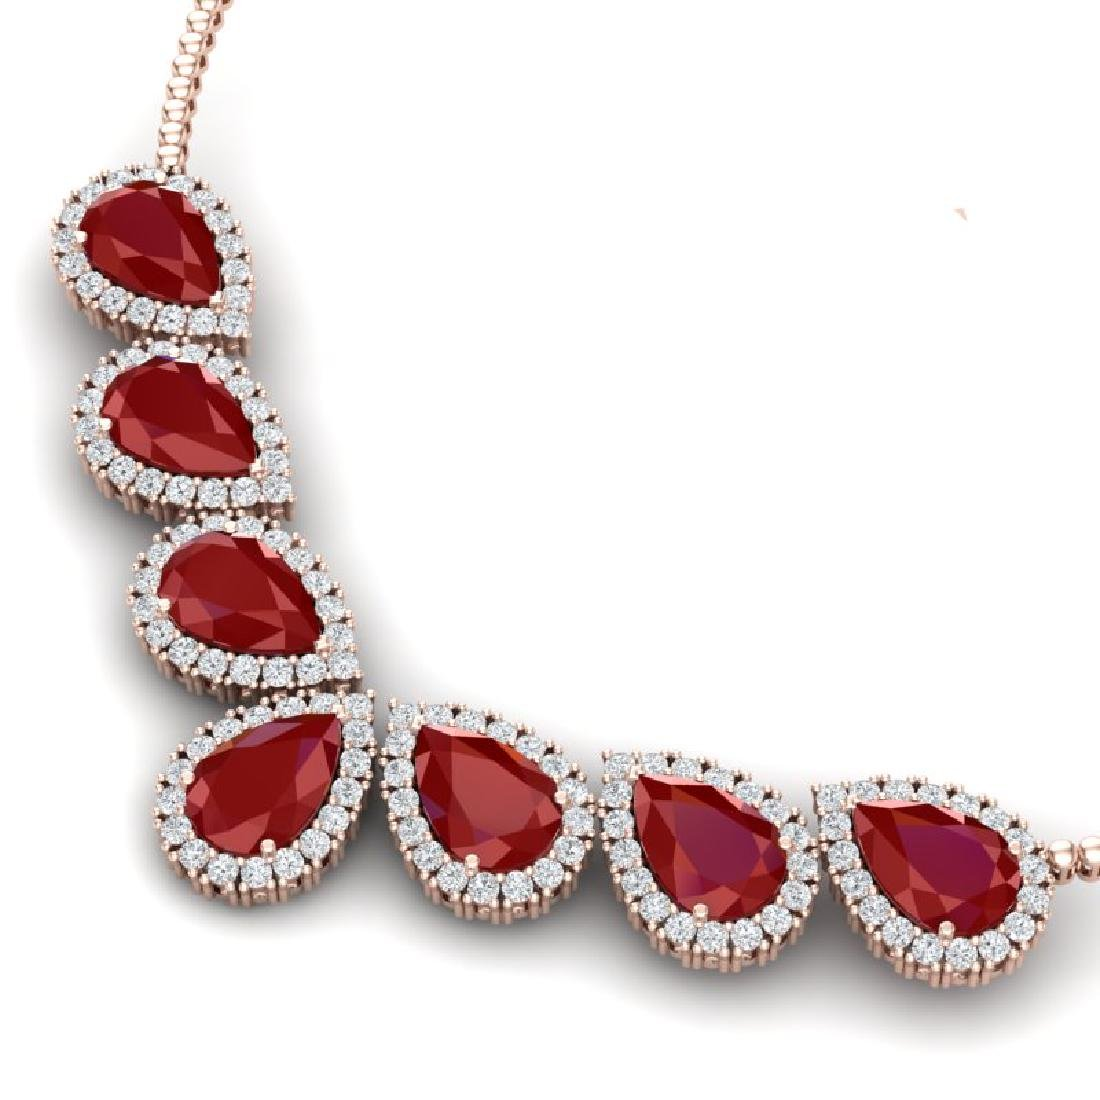 34.72 CTW Royalty Ruby & VS Diamond Necklace 18K Rose - 2